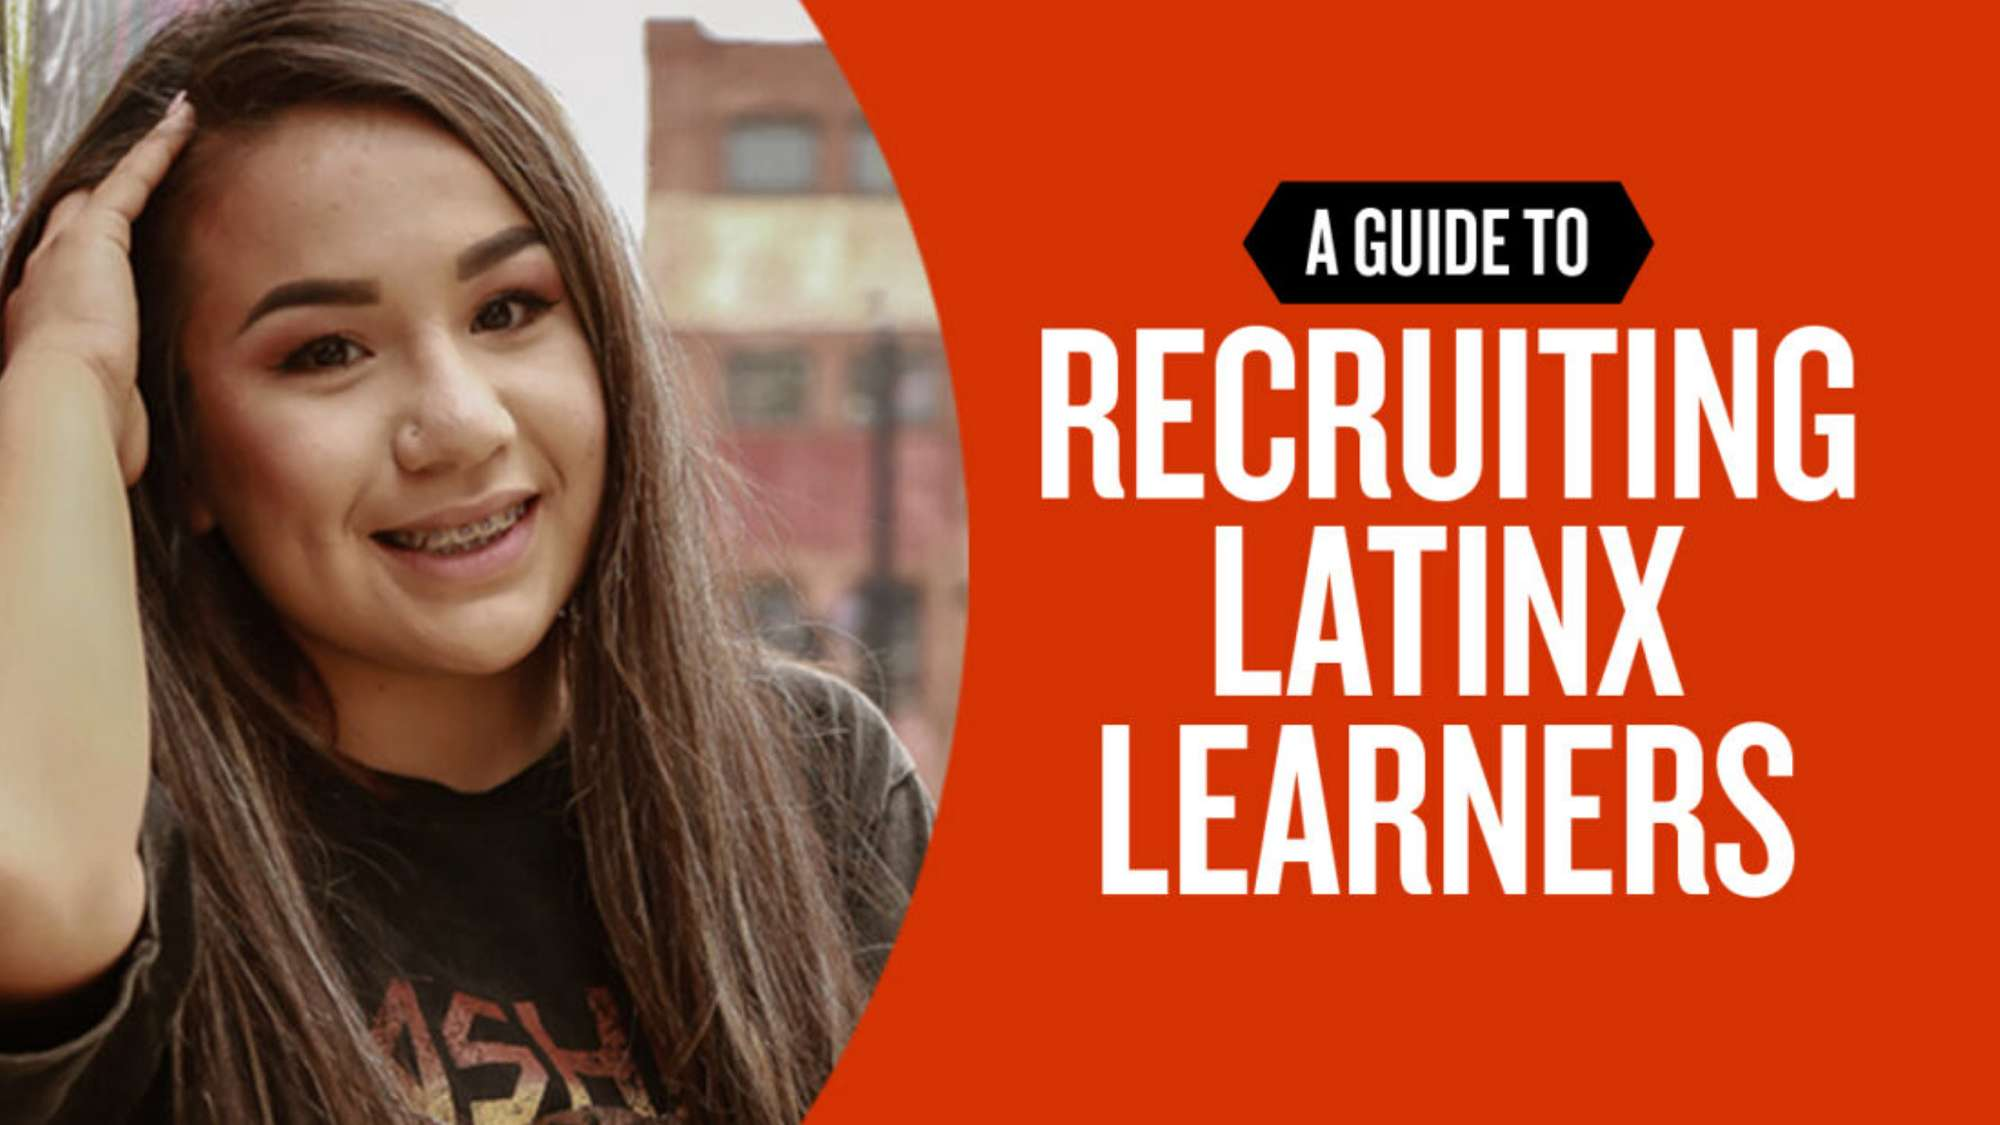 A guide to recruiting LatinX learners.